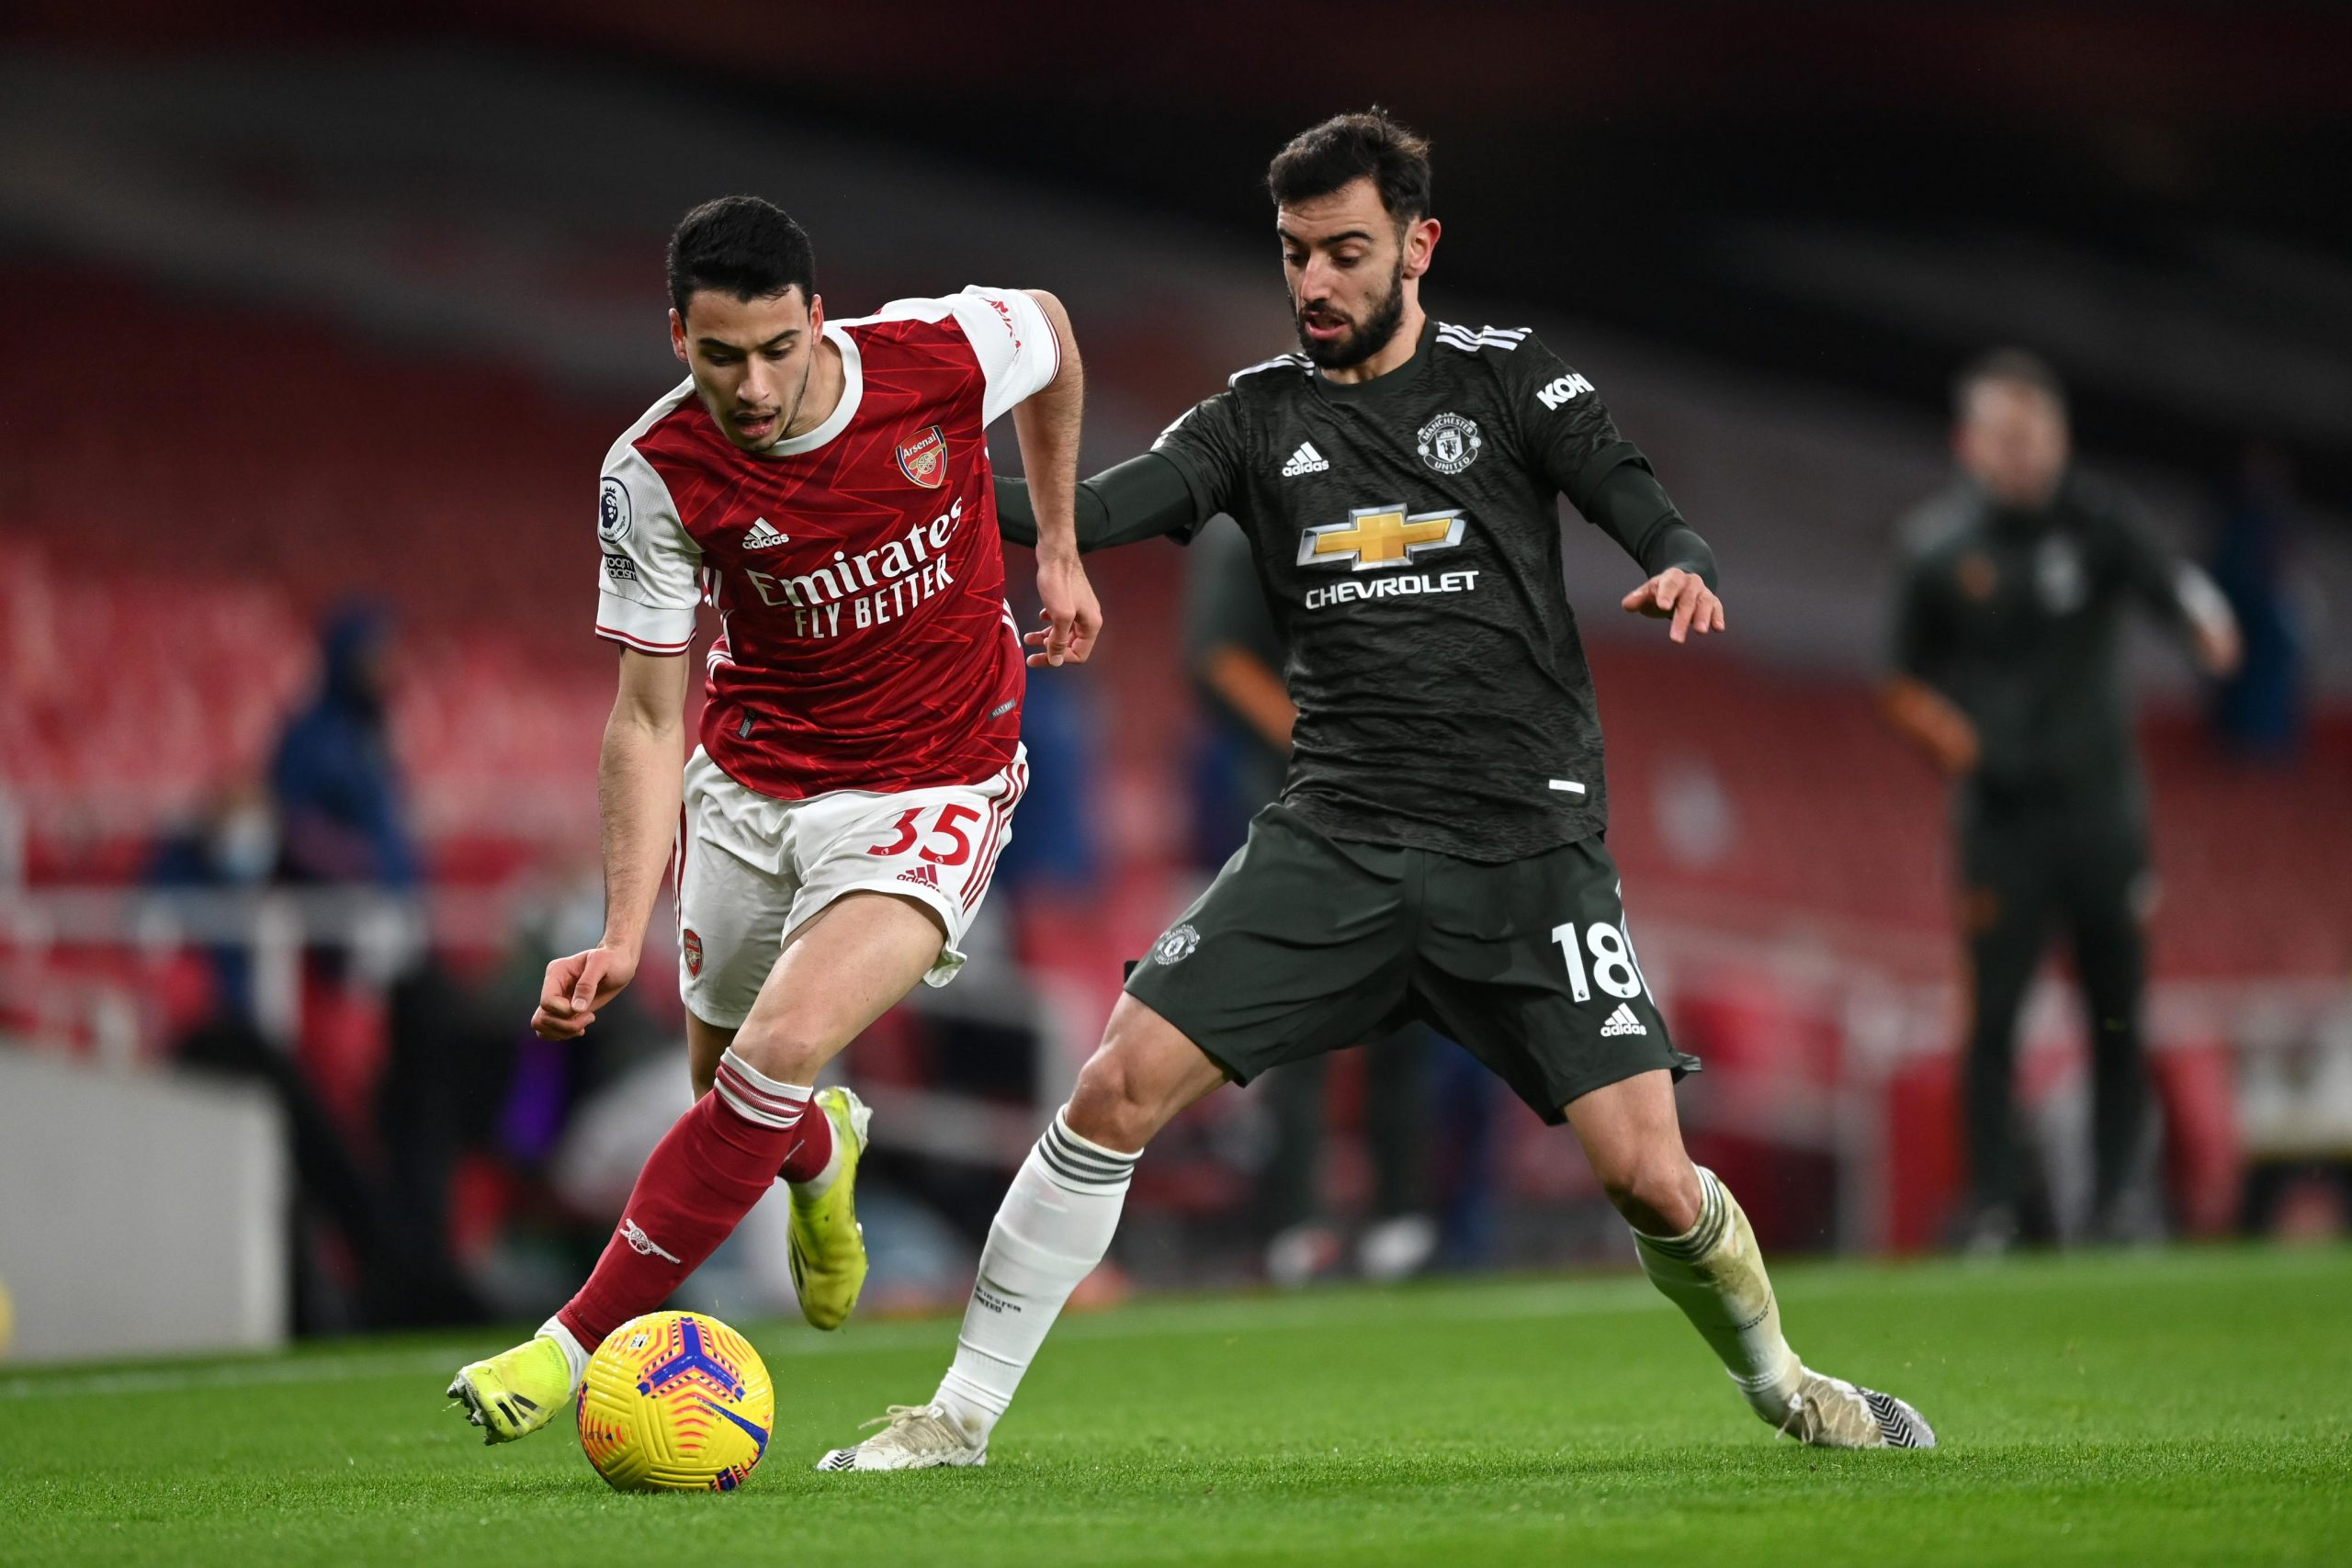 Premier League: Manchester United Held By Arsenal At The Emirates